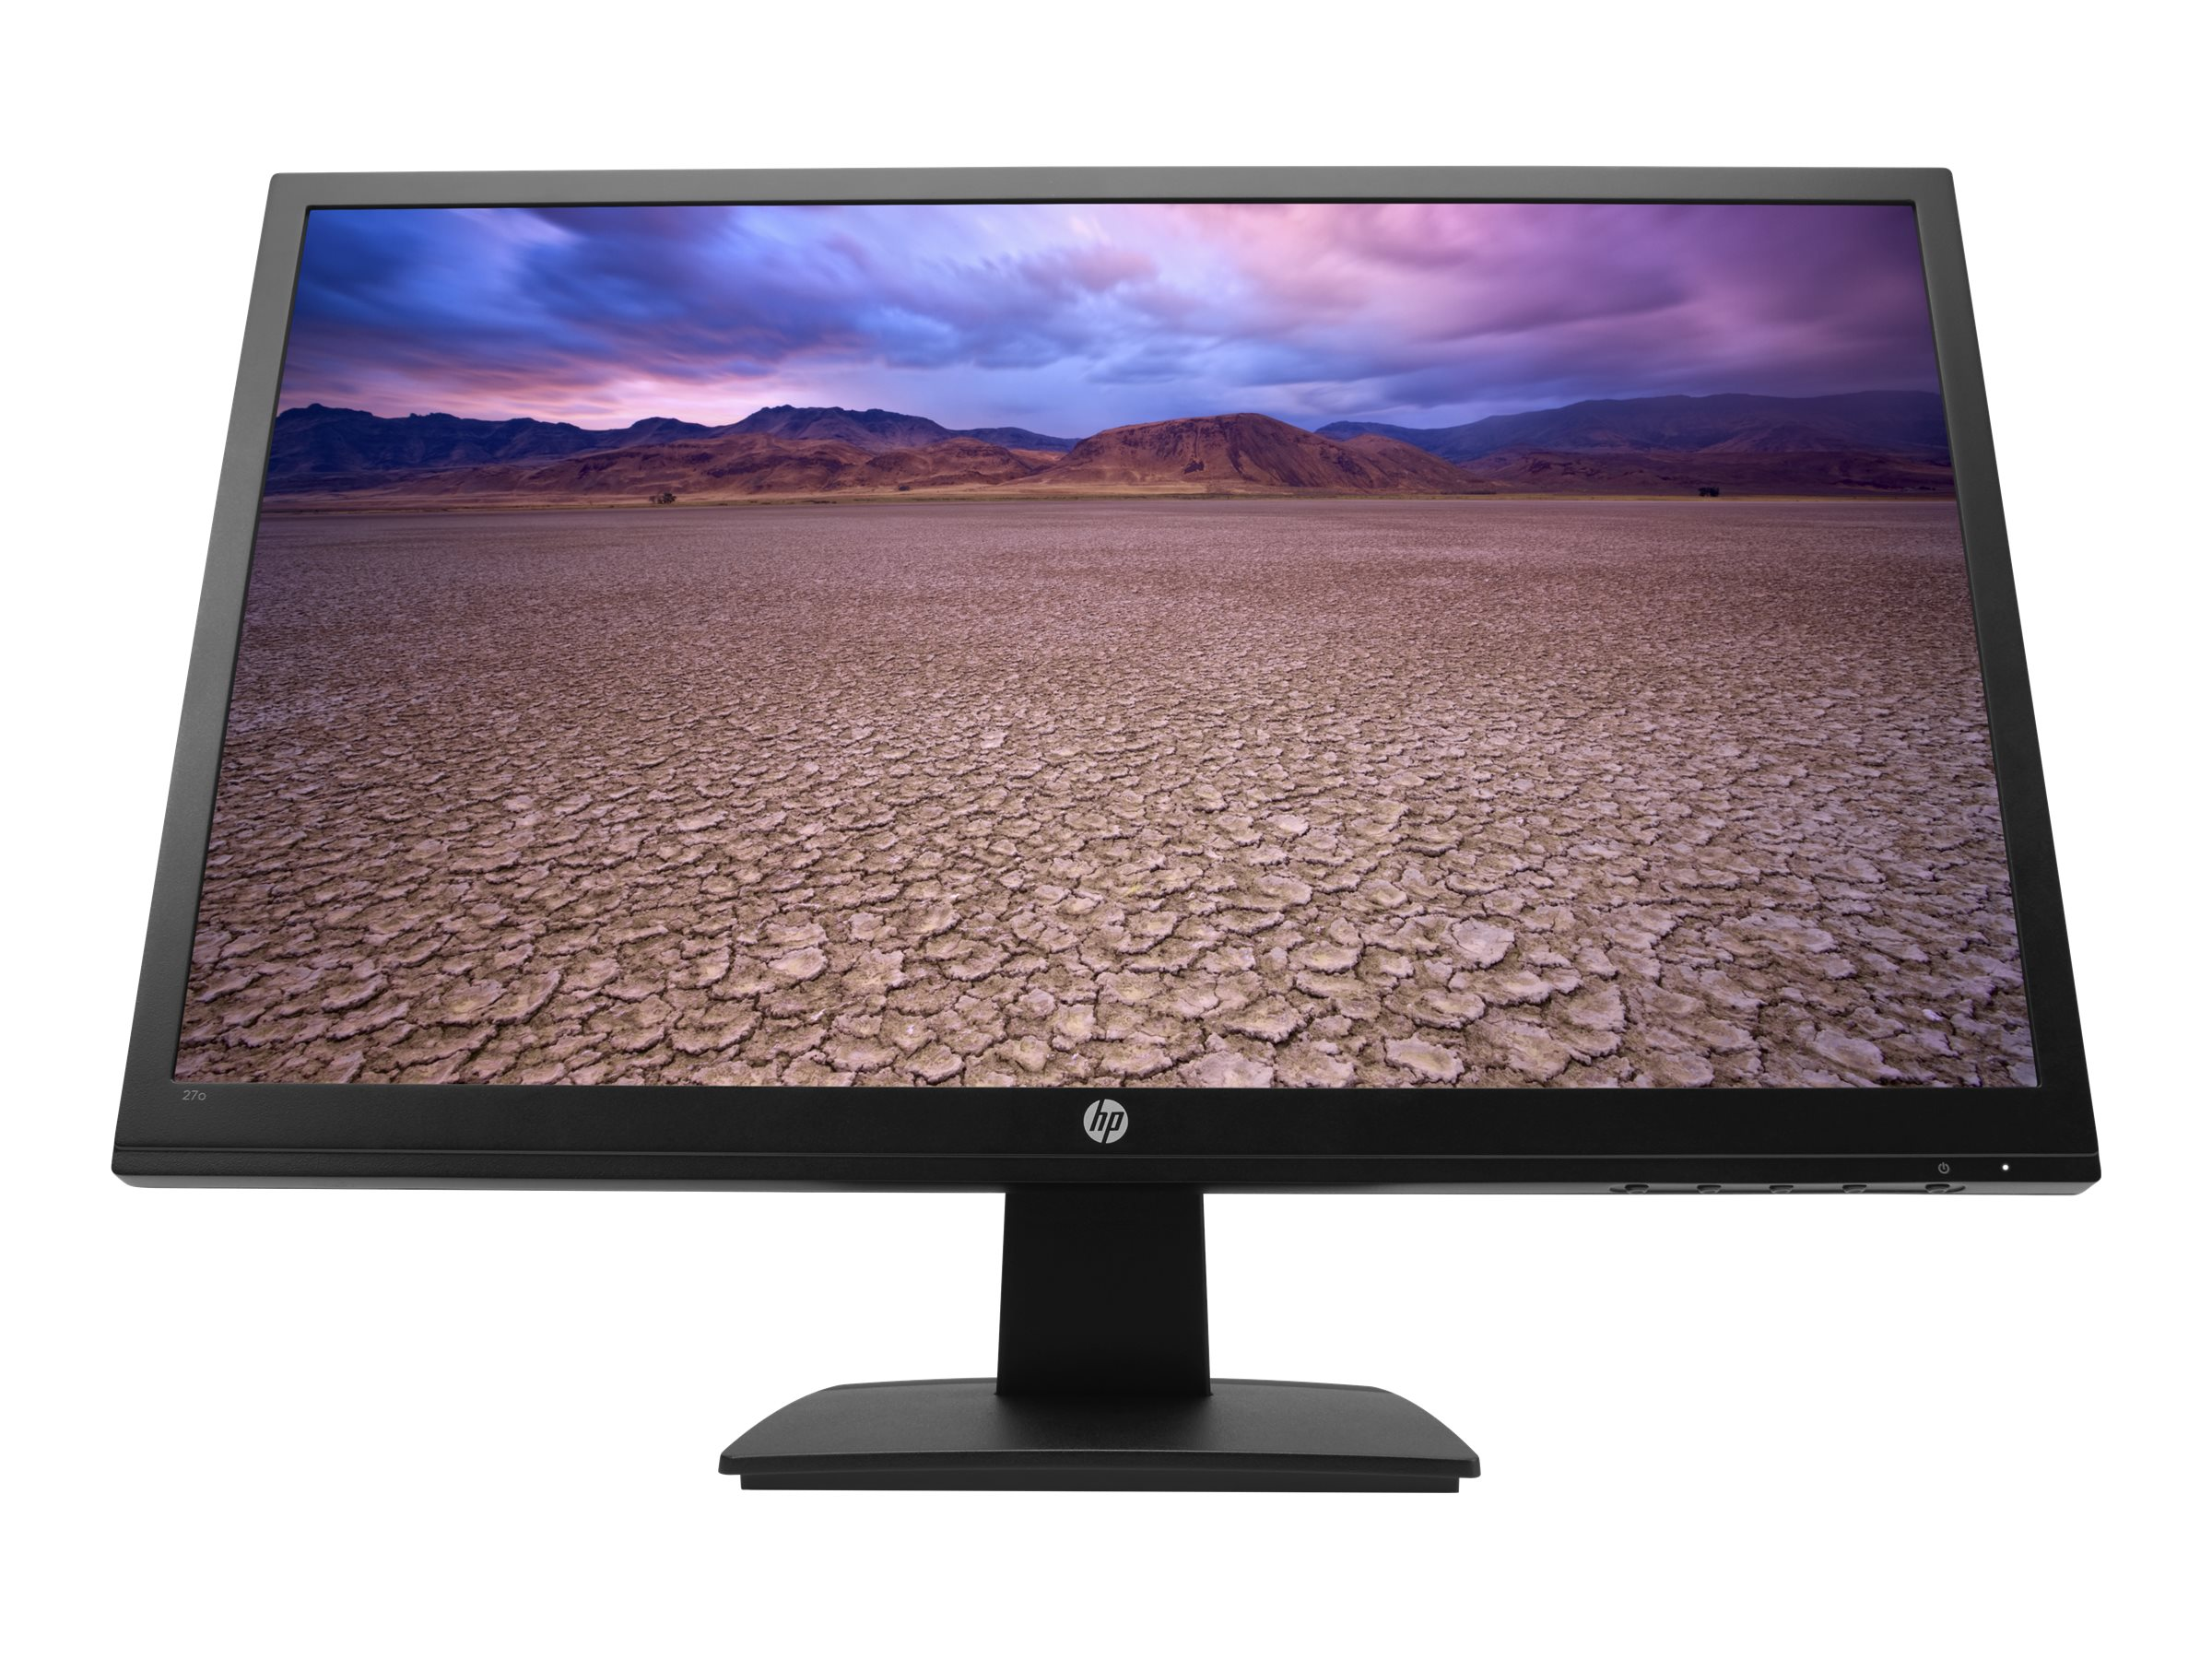 """Image for HP 27o - LED monitor - Full HD (1080p) - 27"""" from Circuit City"""